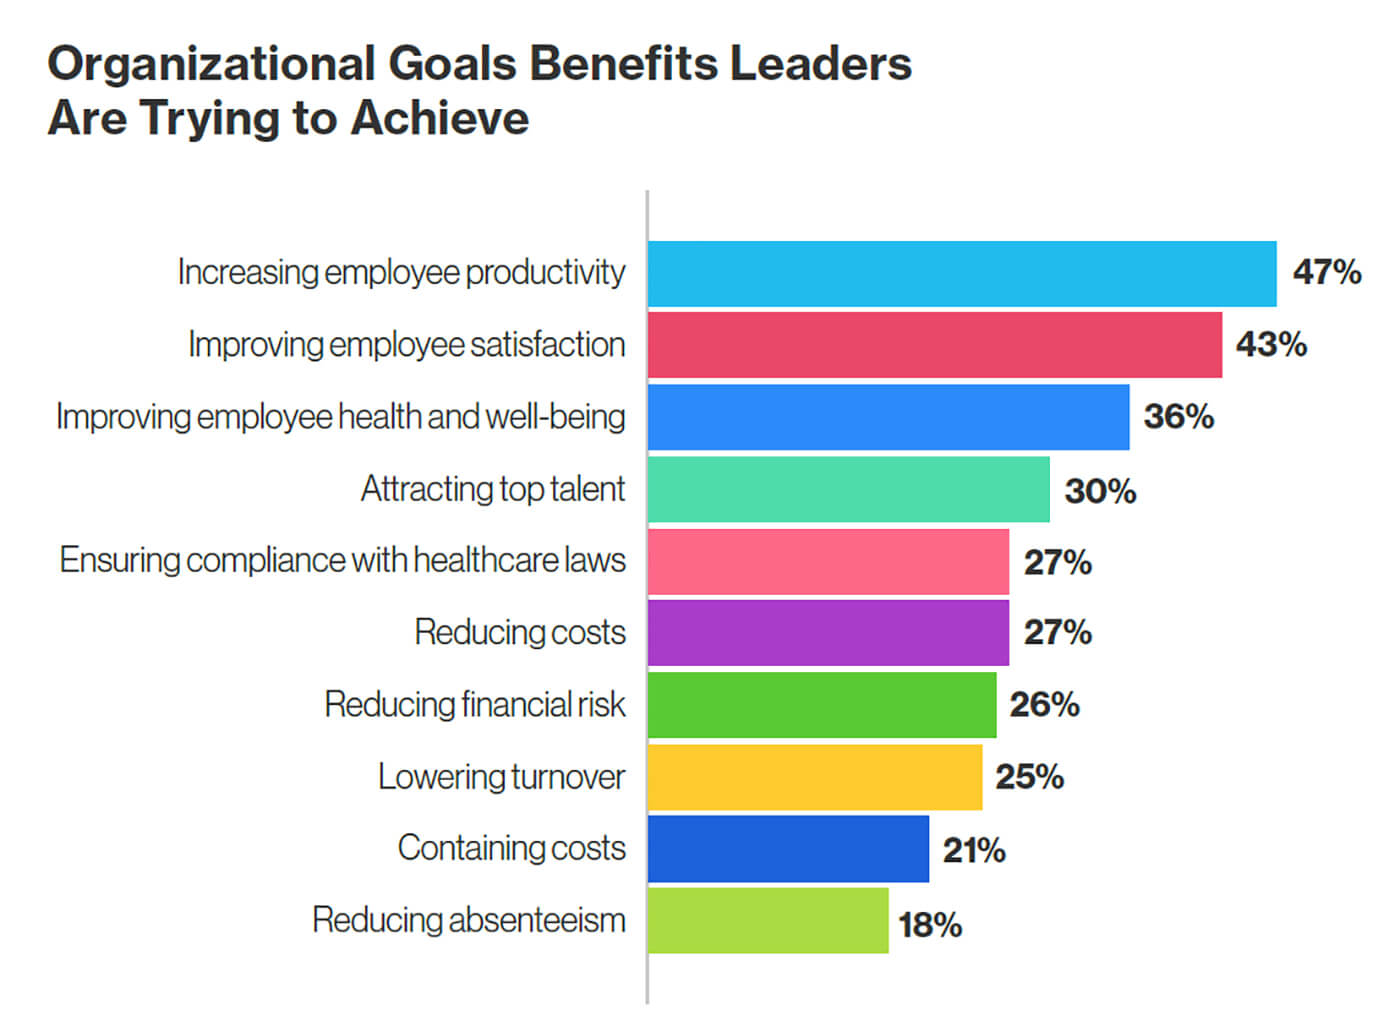 Organizational Benefits Leaders Are Trying to Achieve